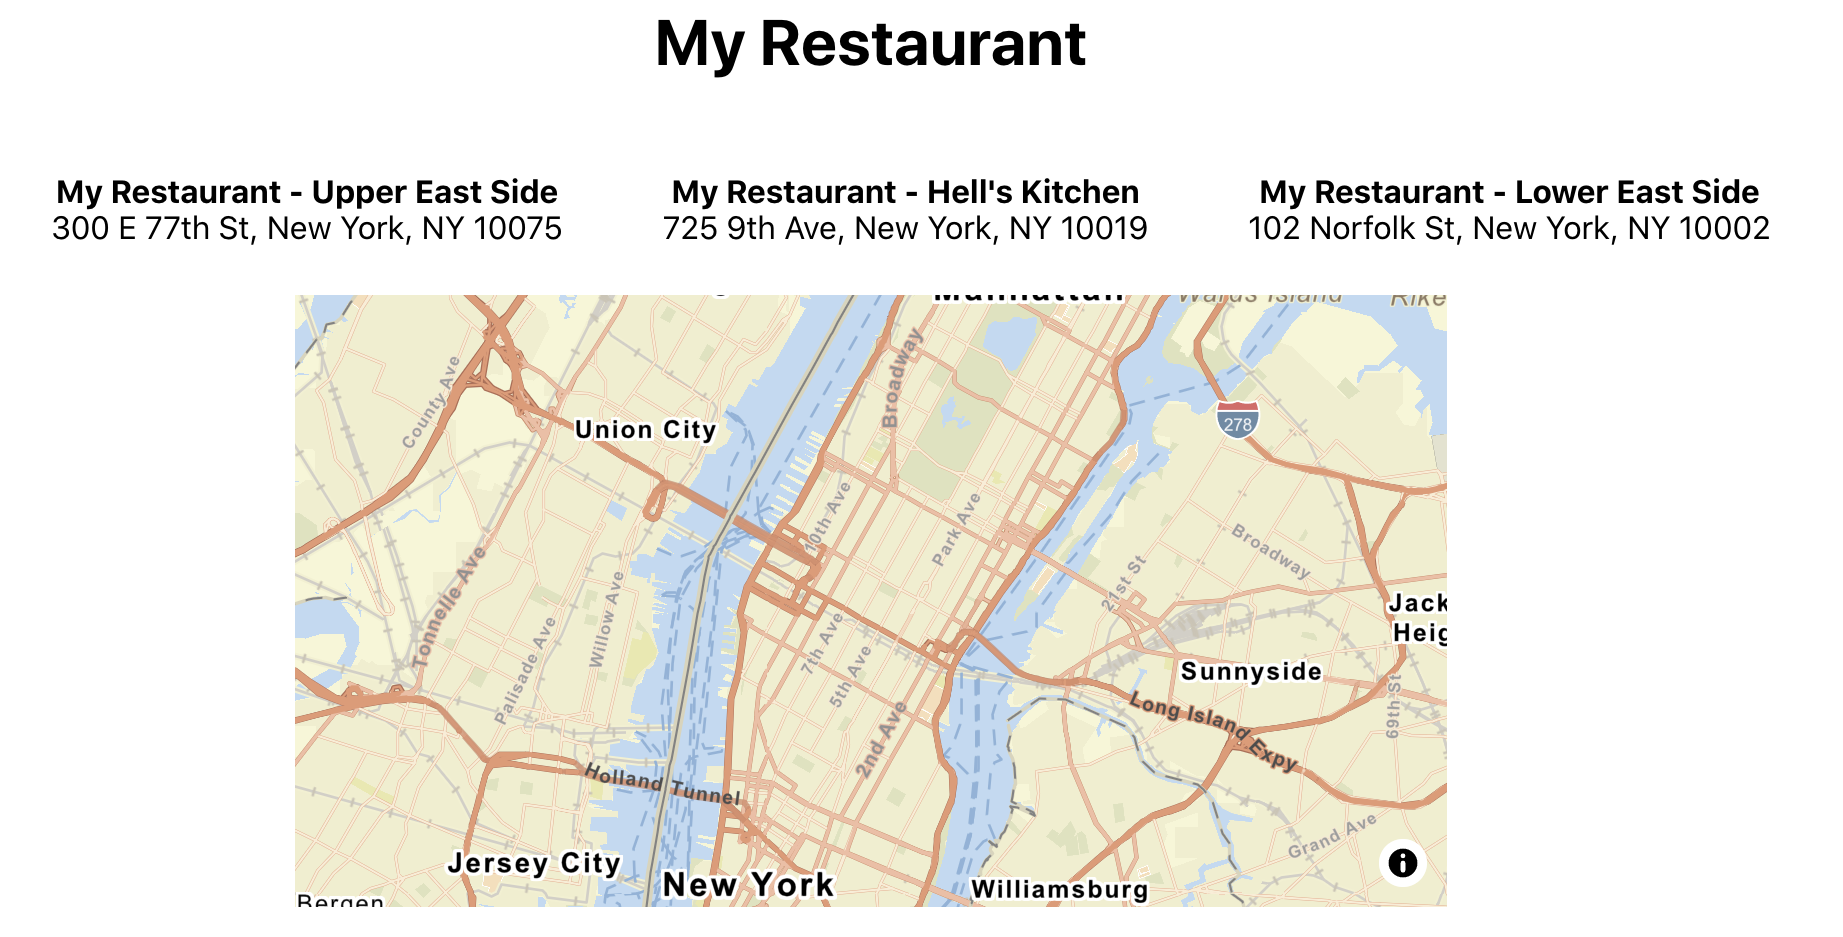 My Restaurant app with map